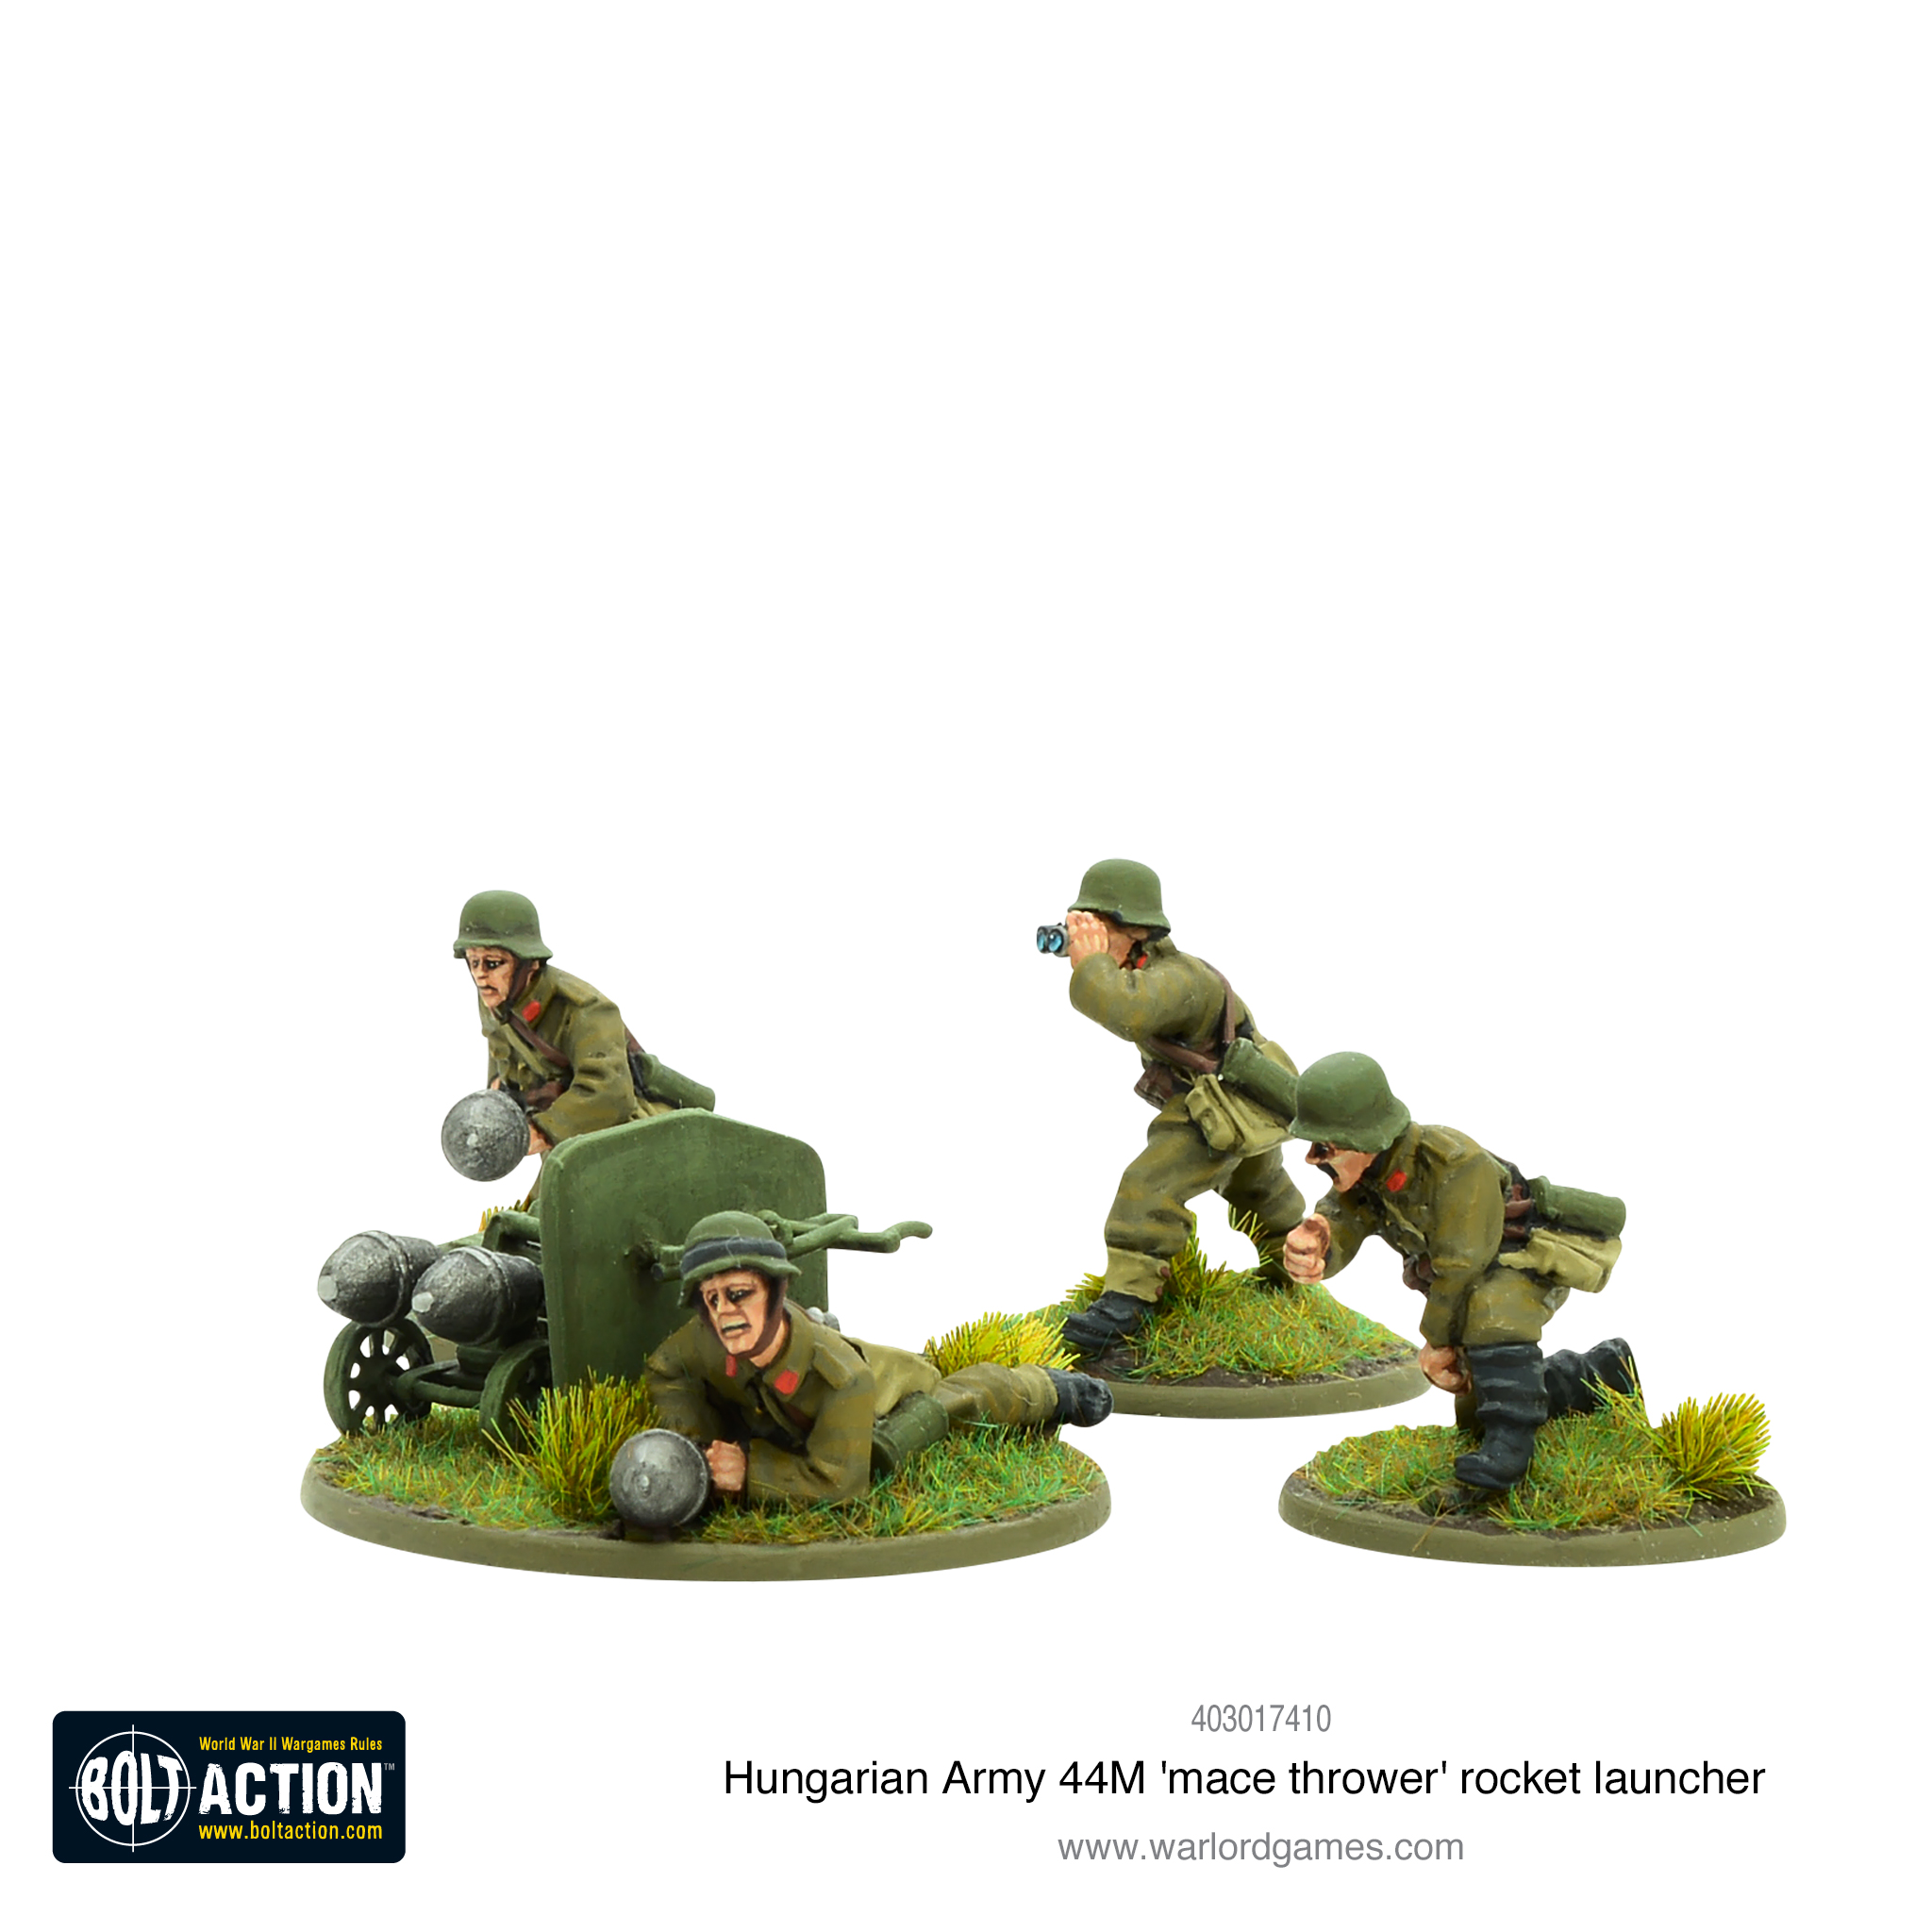 403017410_Hungarian44MRocketLauncher01.jpg